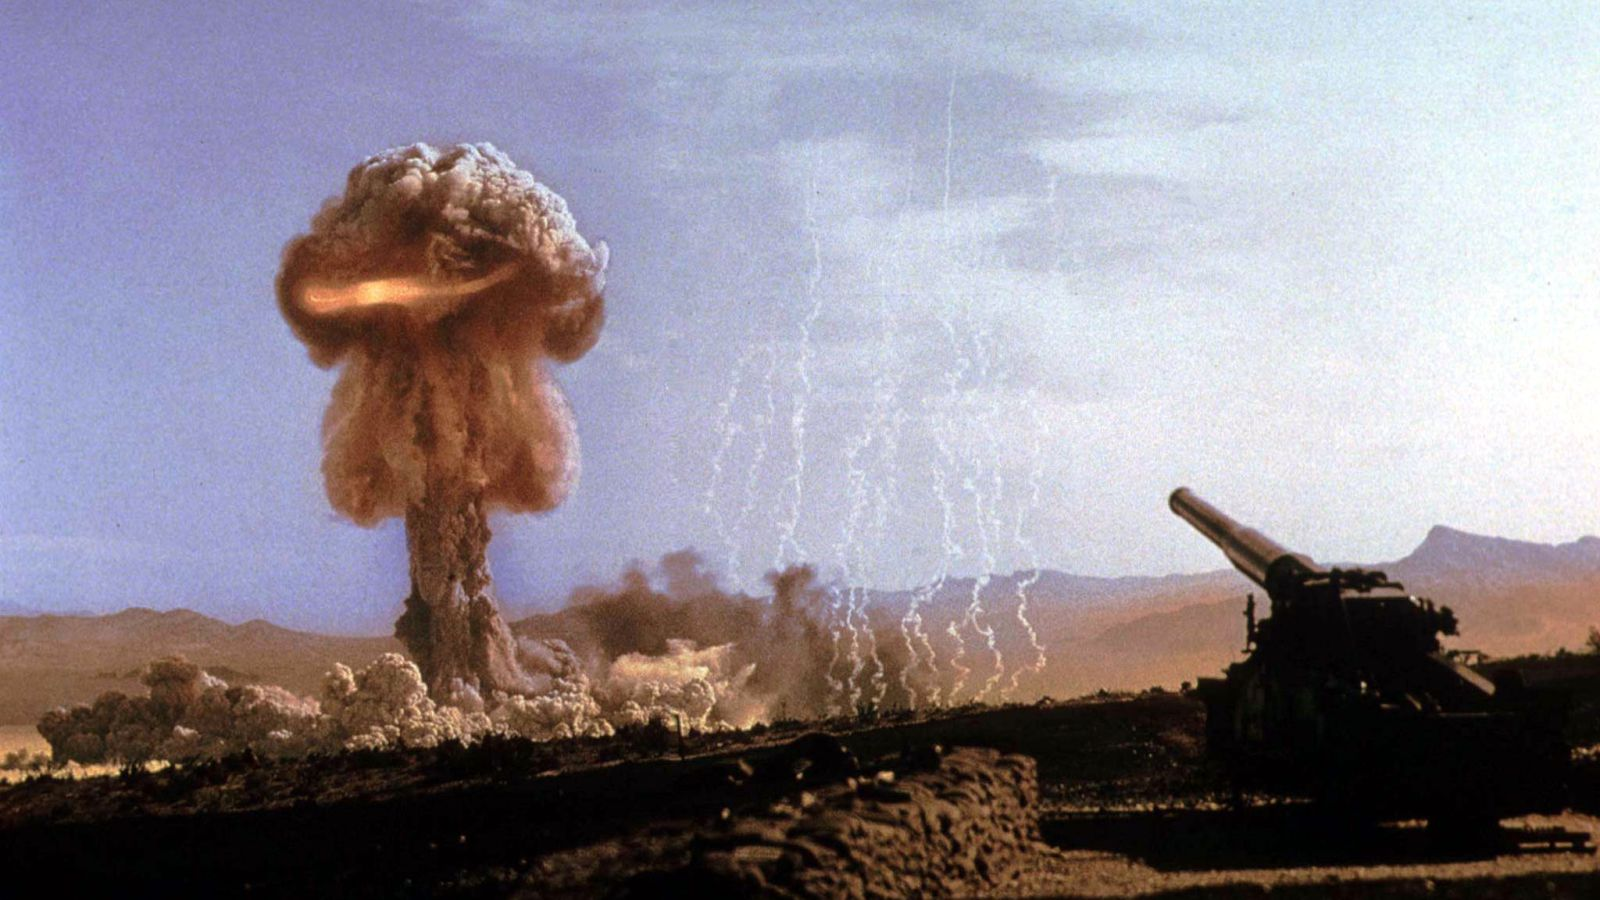 an analysis of the united states use of the atomic bomb and the connection to the russian forces Aftermath: after the use of the atomic bomb, there was a moral debate about its use the bombs killed more than 100,000 in hiroshima and more than 70,000 in nagasakiboth cities were centers of war production, but many innocents died.